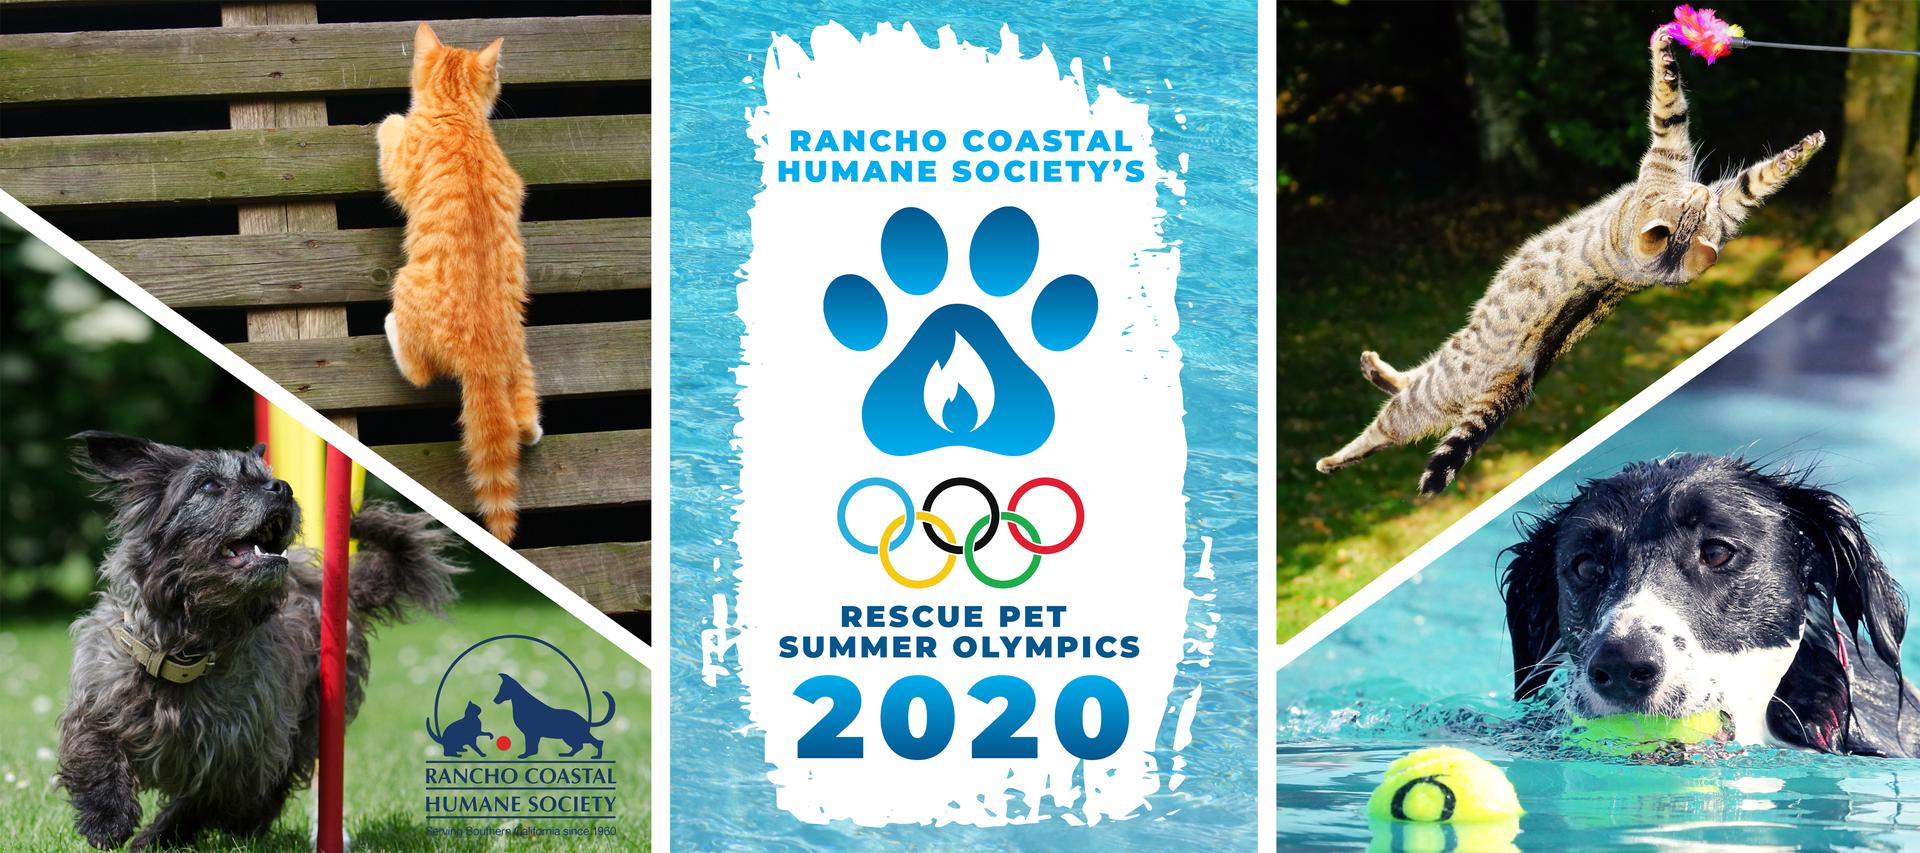 Rescue Pet Summer Olympics 2020